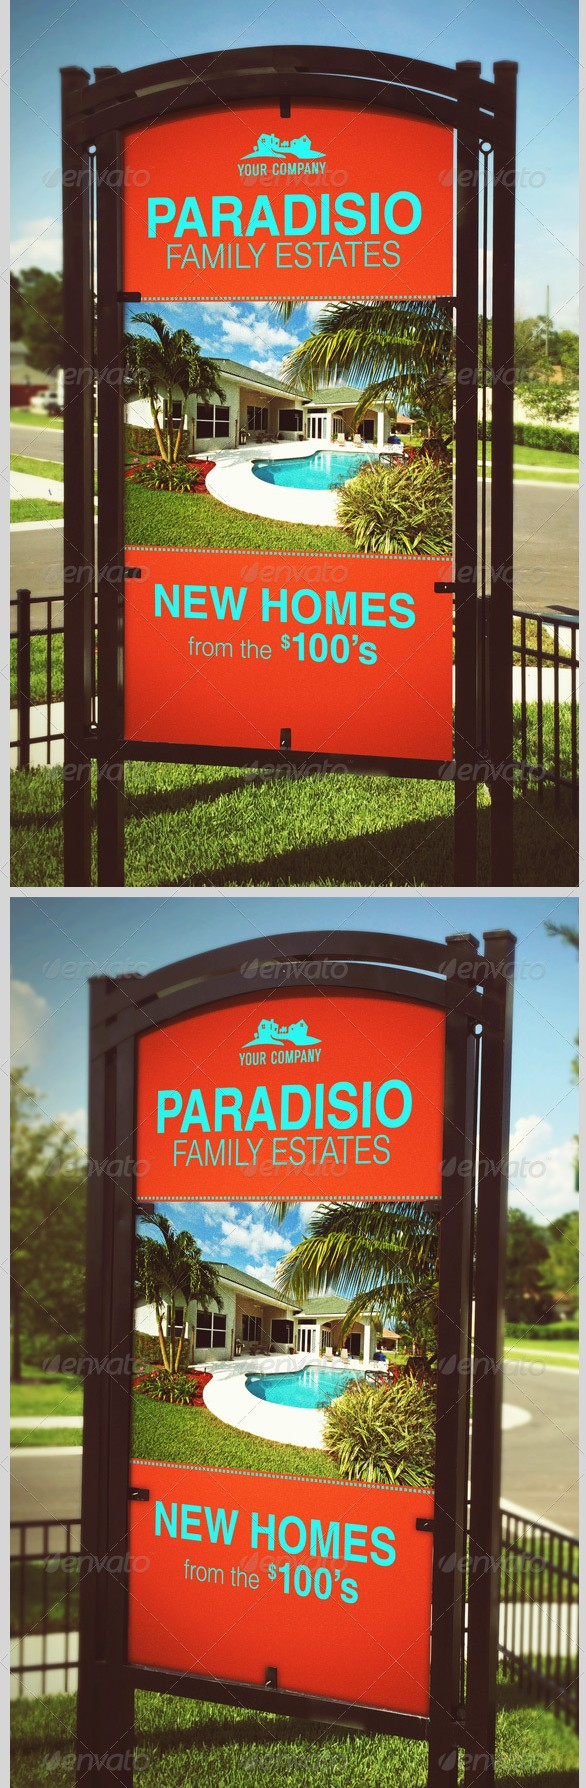 Vertical Outdoor Signage Mockup Template